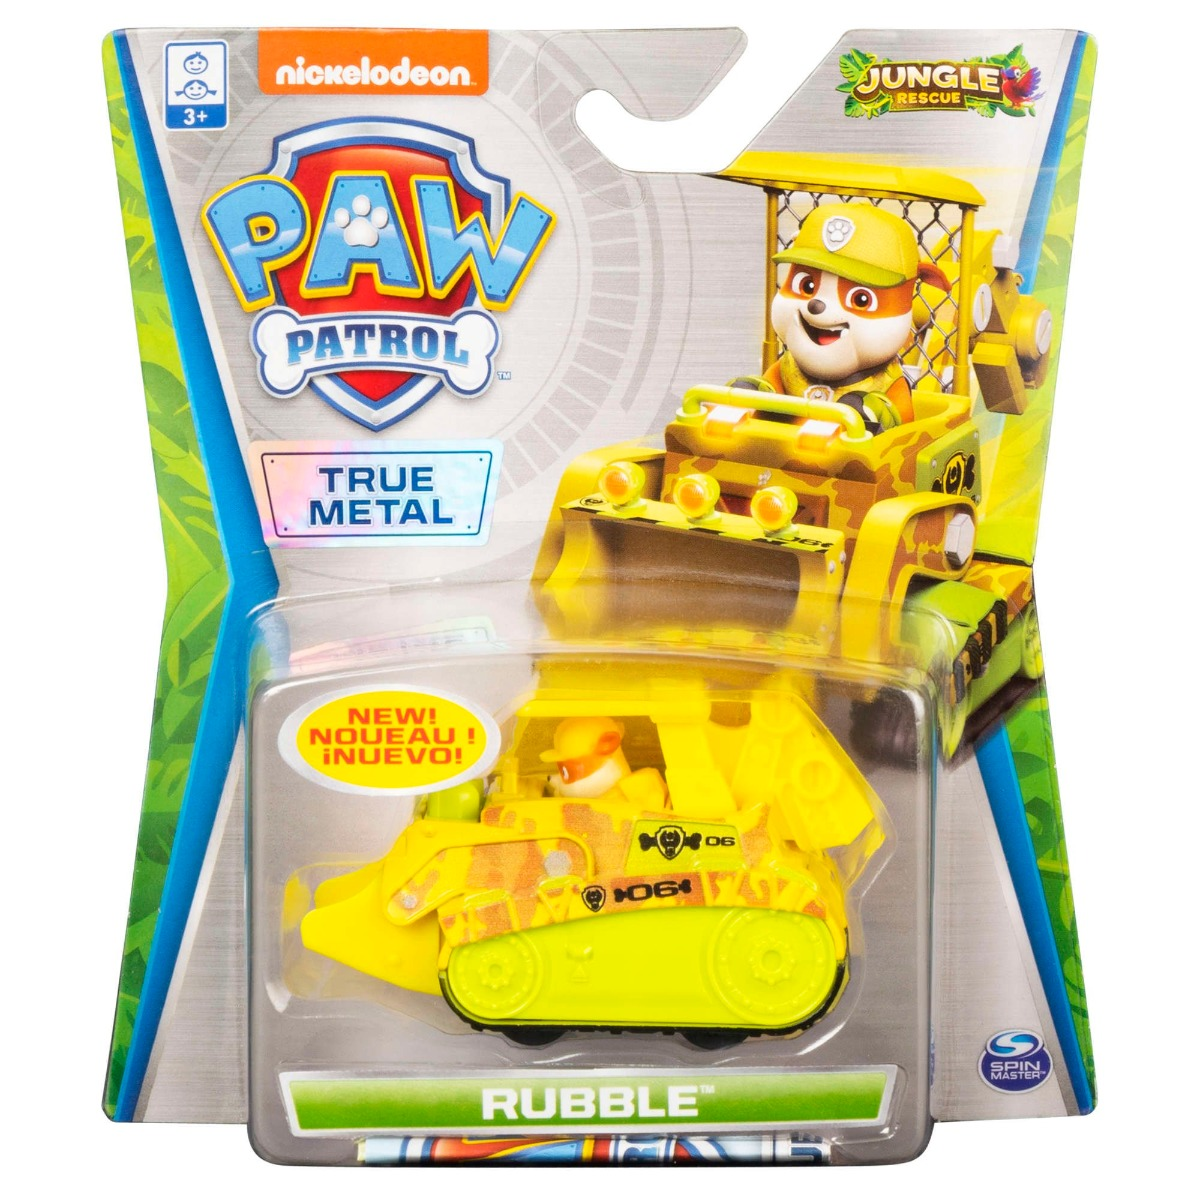 Masinuta cu figurina Paw Patrol True Metal, Rubble 20121338